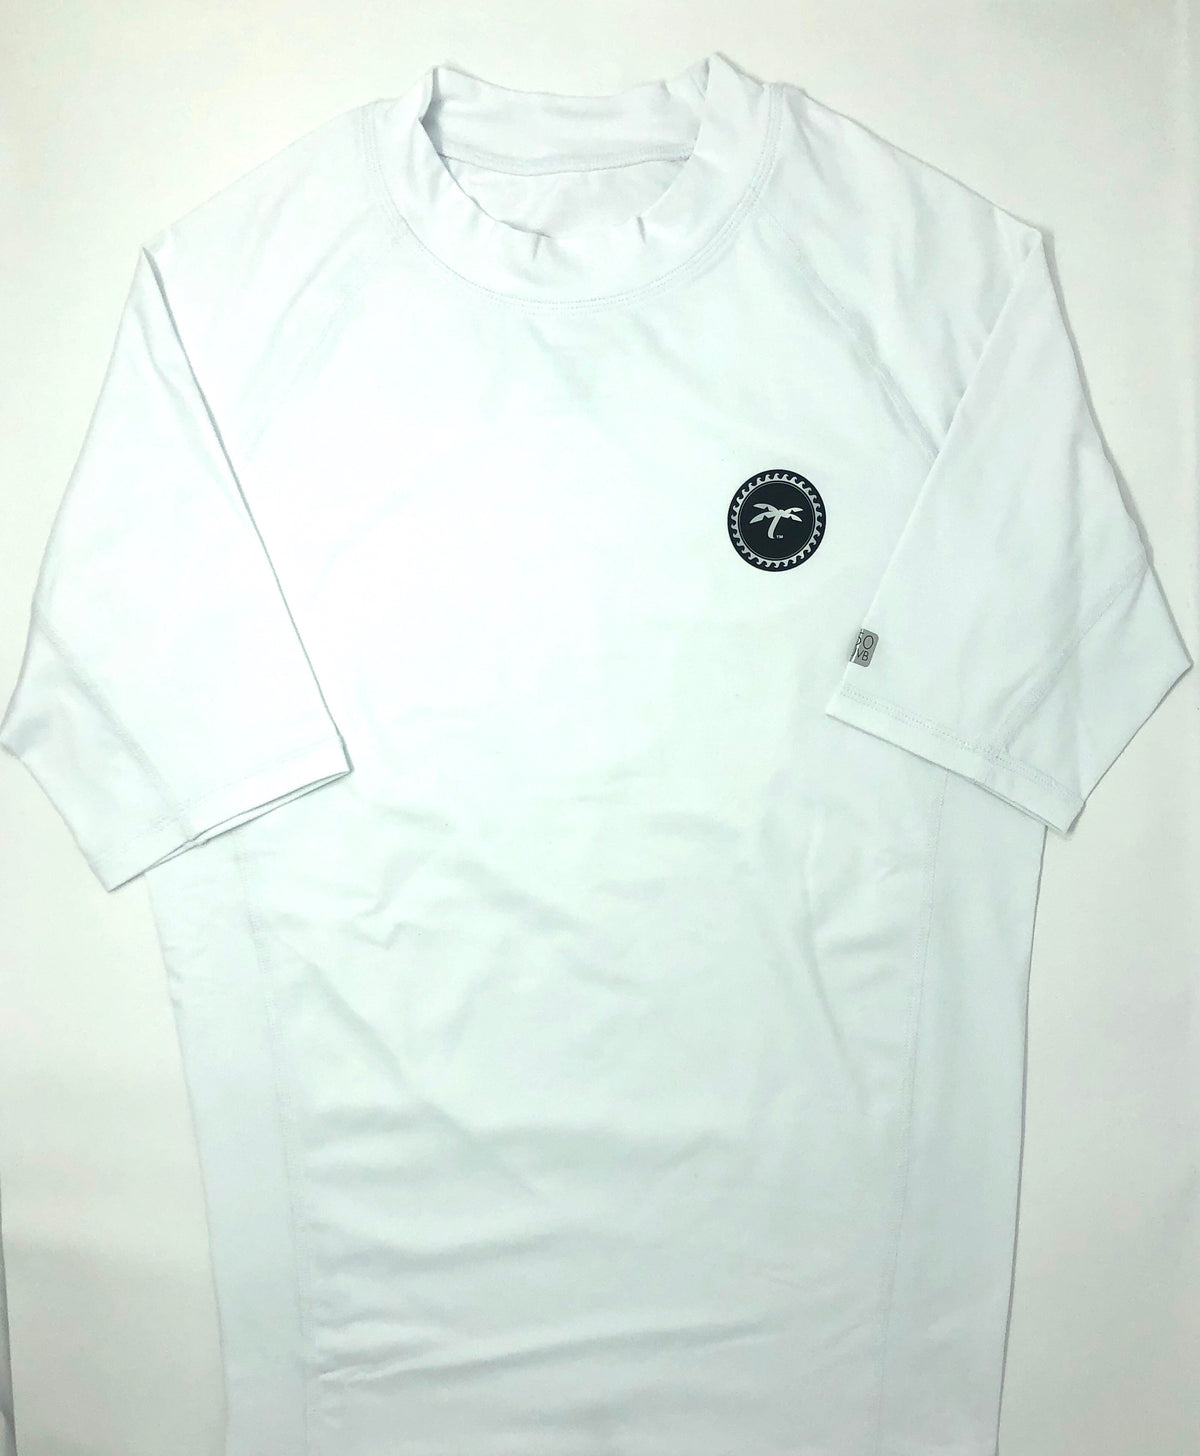 Rash-guard short sleeve white